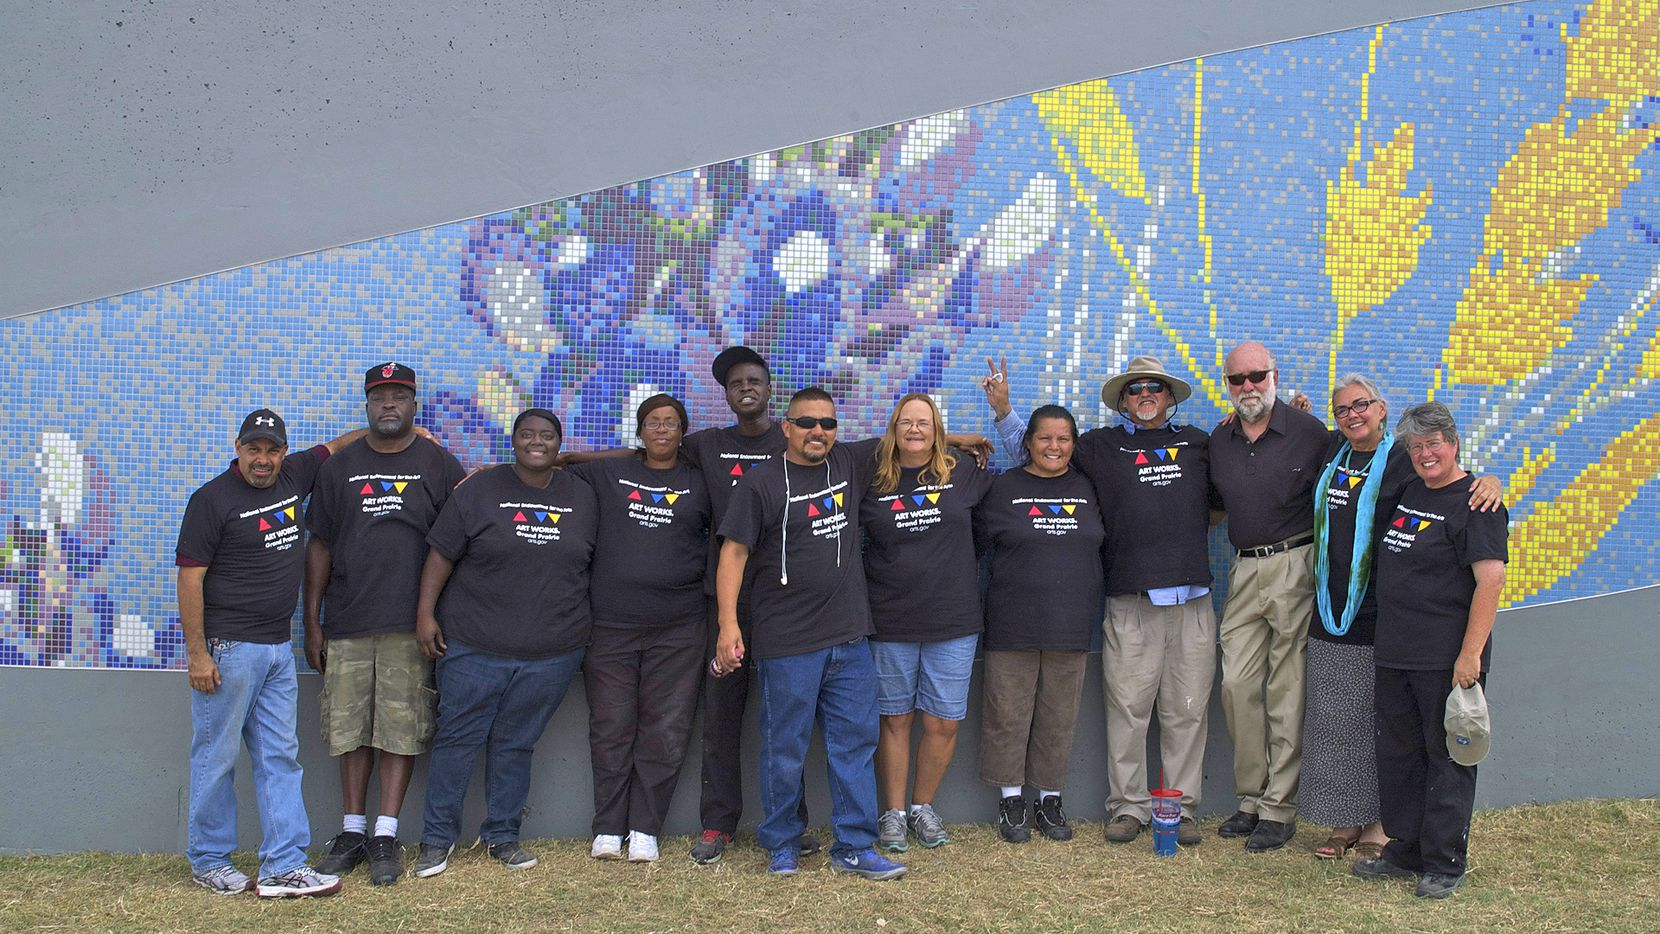 A group of ex-offenders and city of Grand Prairie staffers and volunteers pose in front of part of a mosaic tile illustration along a stretch of Interstate 30.